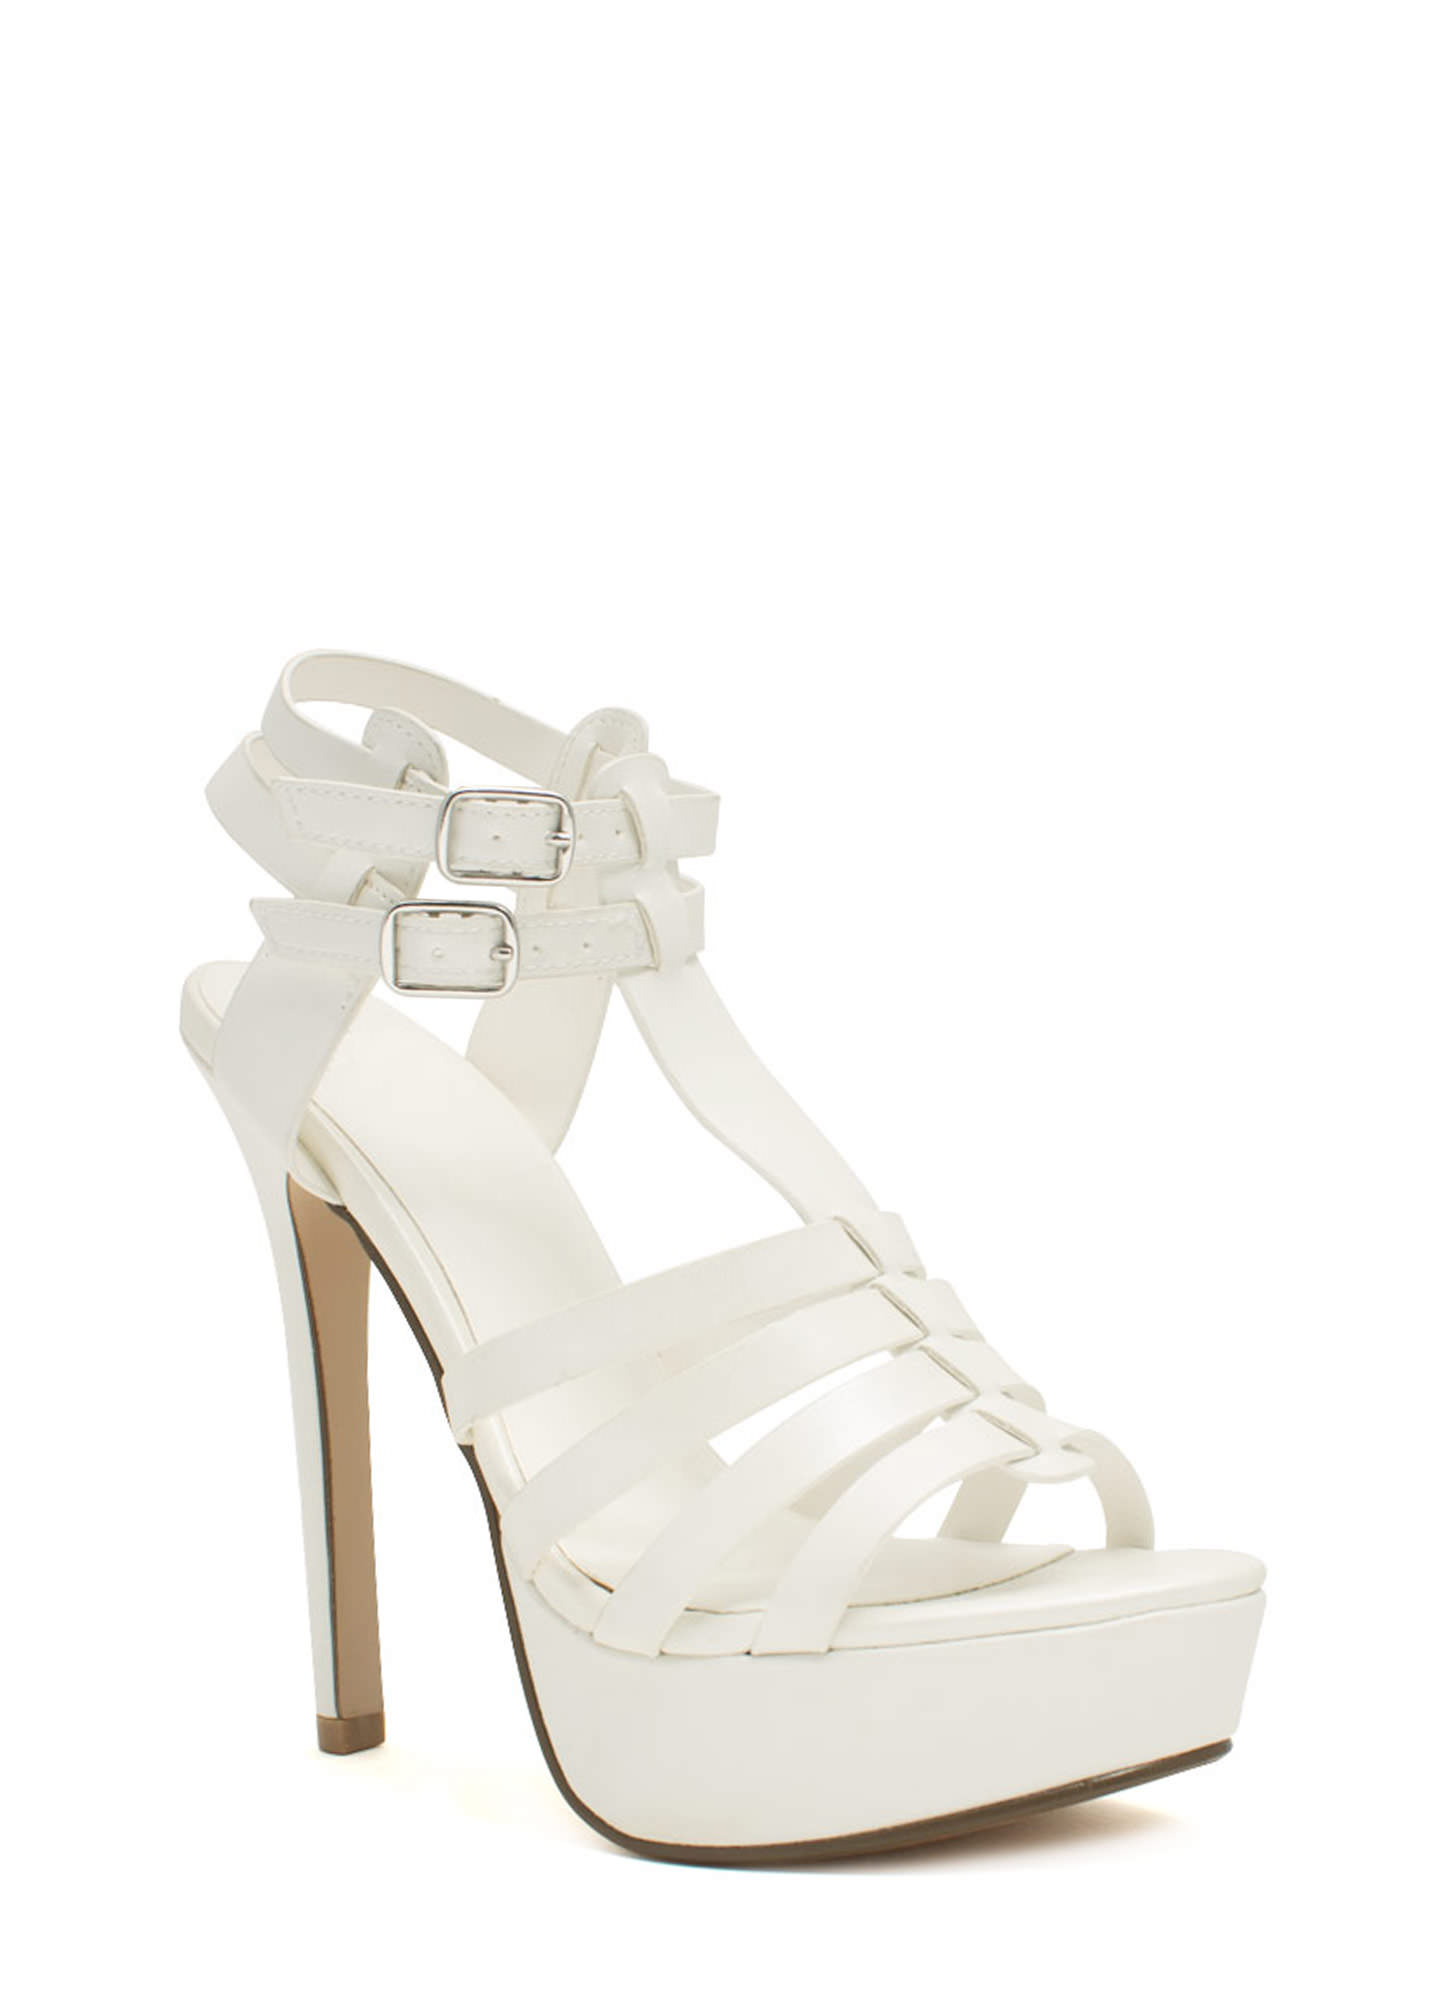 Ladder Strapped Platform Heels WHITE